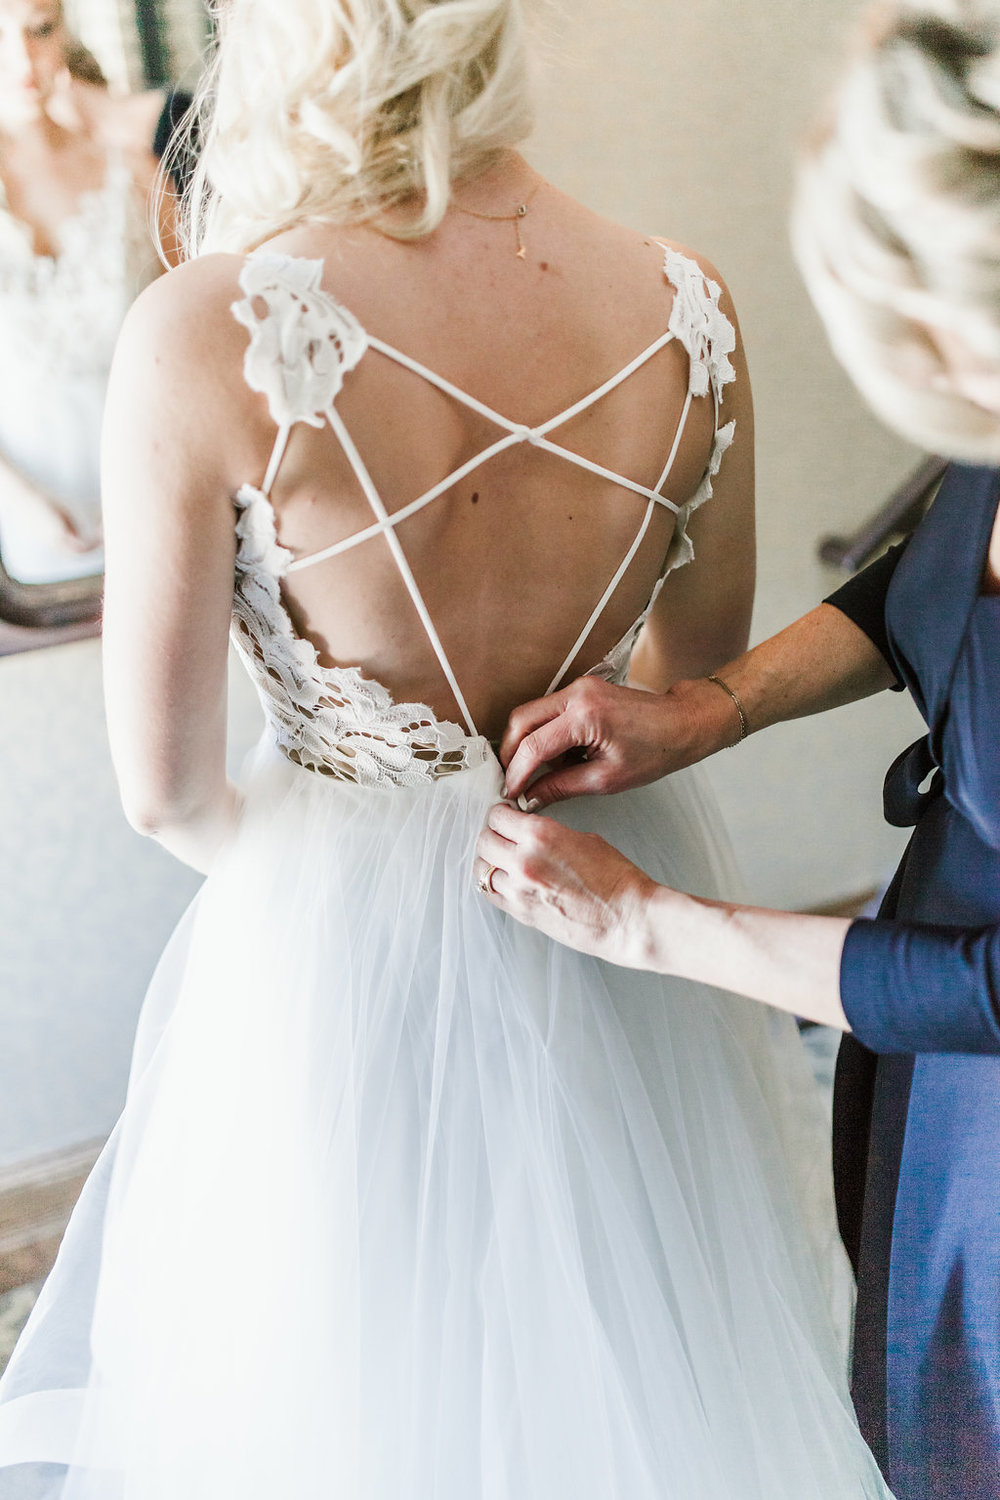 Hayley Paige wedding dress with criss cross strappy back | Aaron T Photography | blonde bride | tulle skirt | mom helping bride into her dress